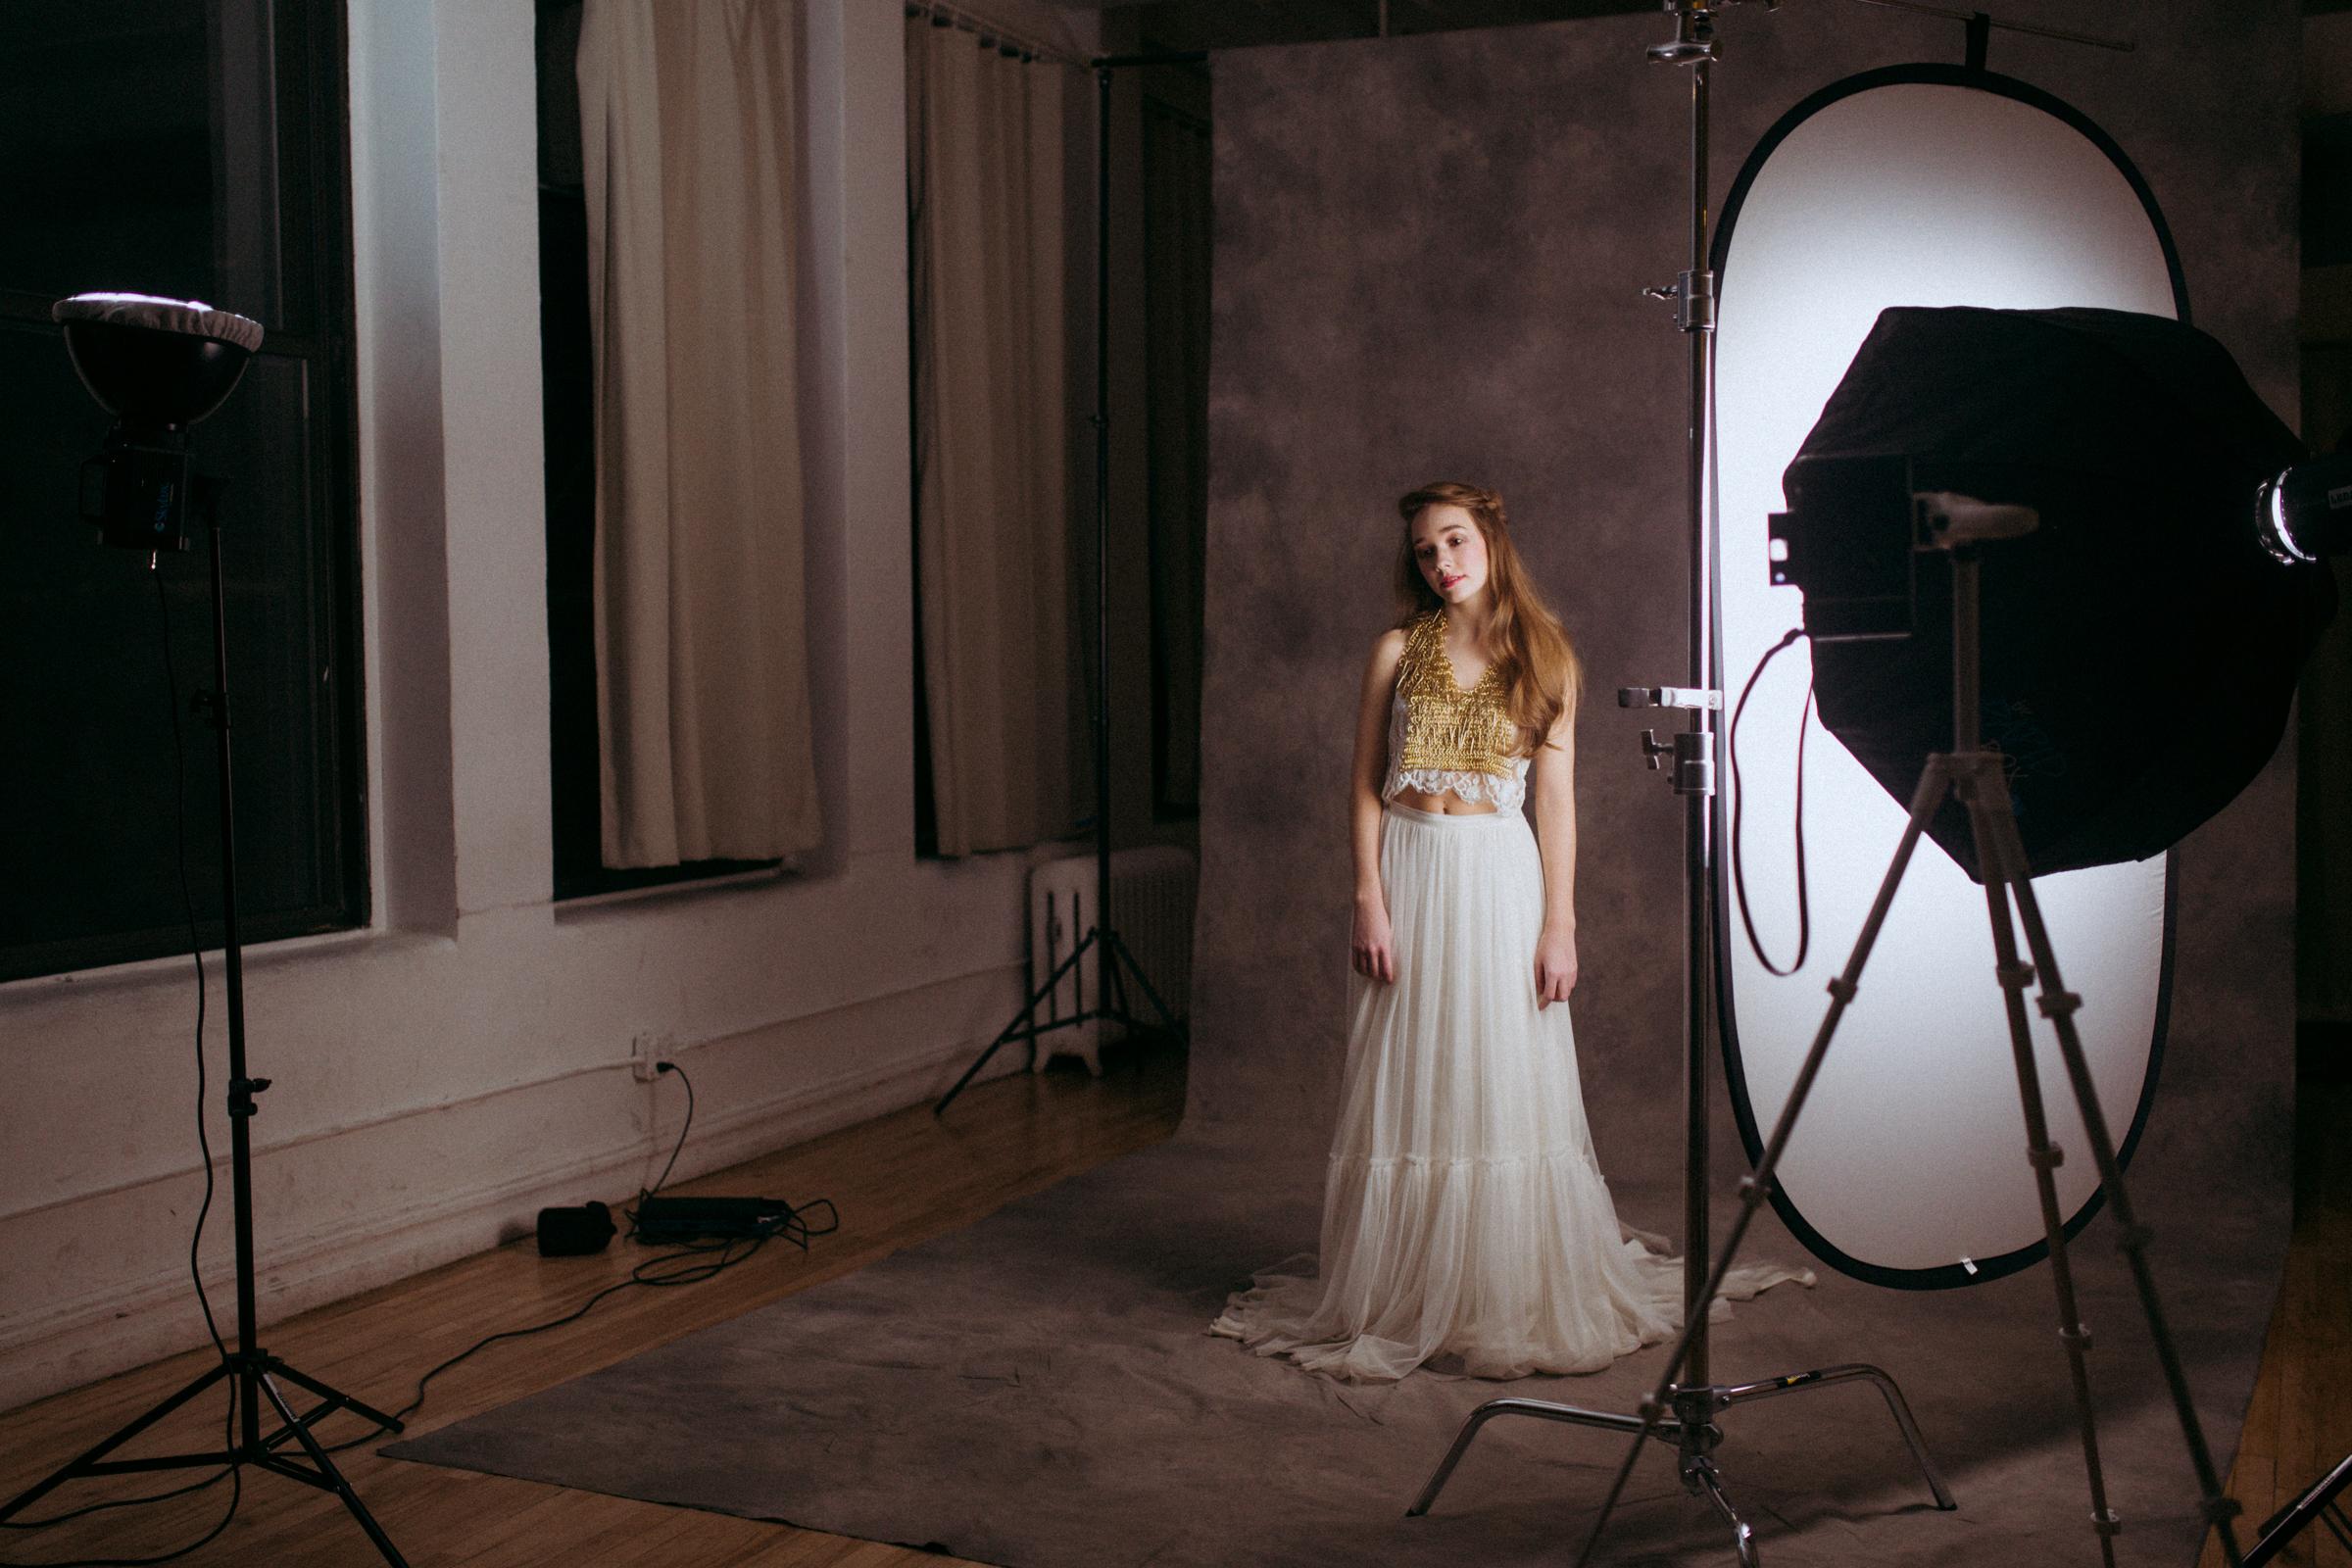 behind the scenes with holly taylor emily soto fashion